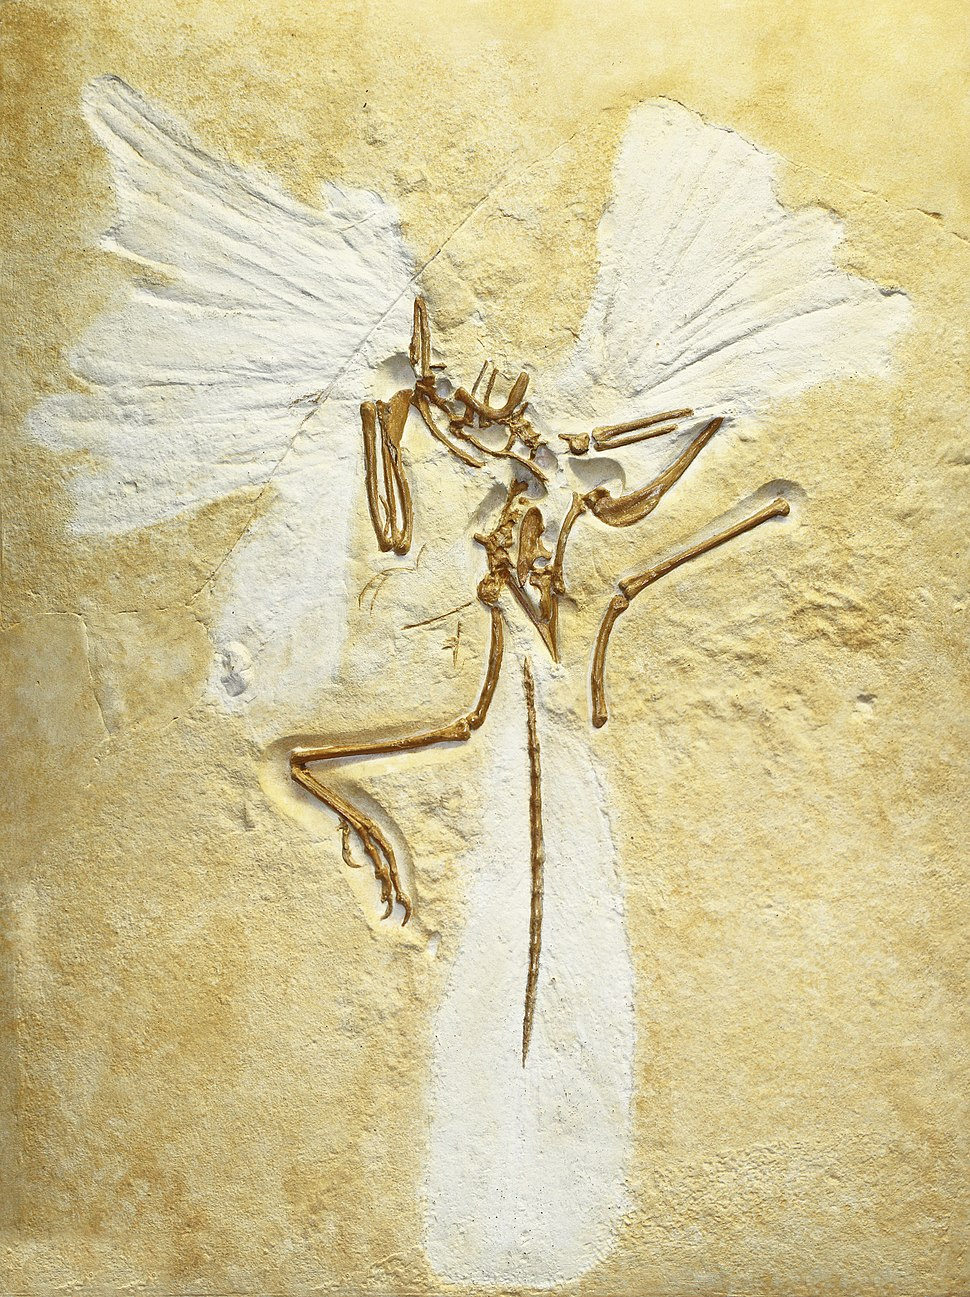 Archaeopteryx lithographica, replica of London specimen, Staatliches Museum f%C3%BCr Naturkunde Karlsruhe, Germany - 20100925